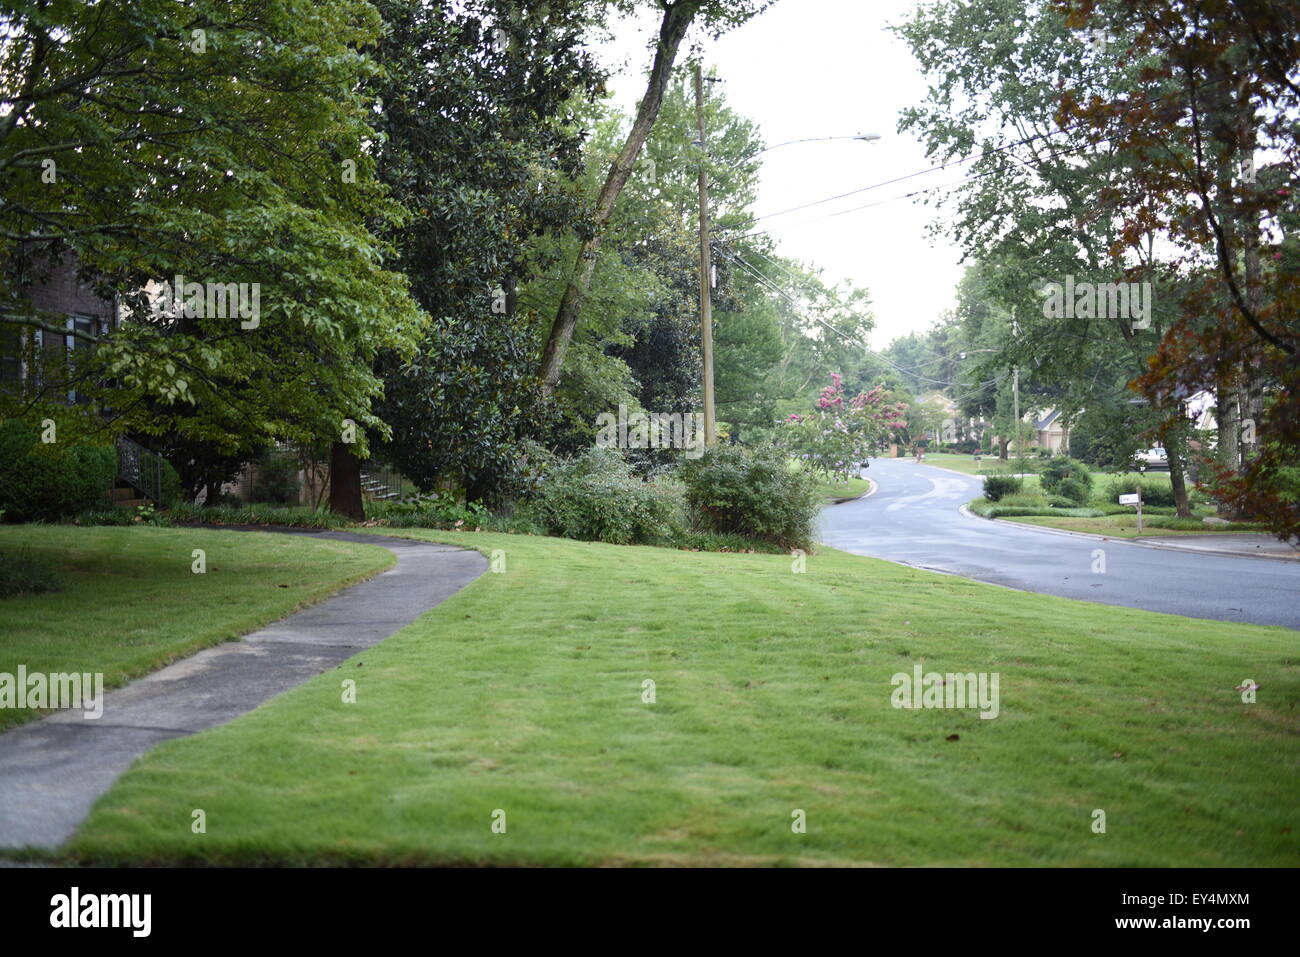 front yard freshly cut lawn and suburbs - Stock Image